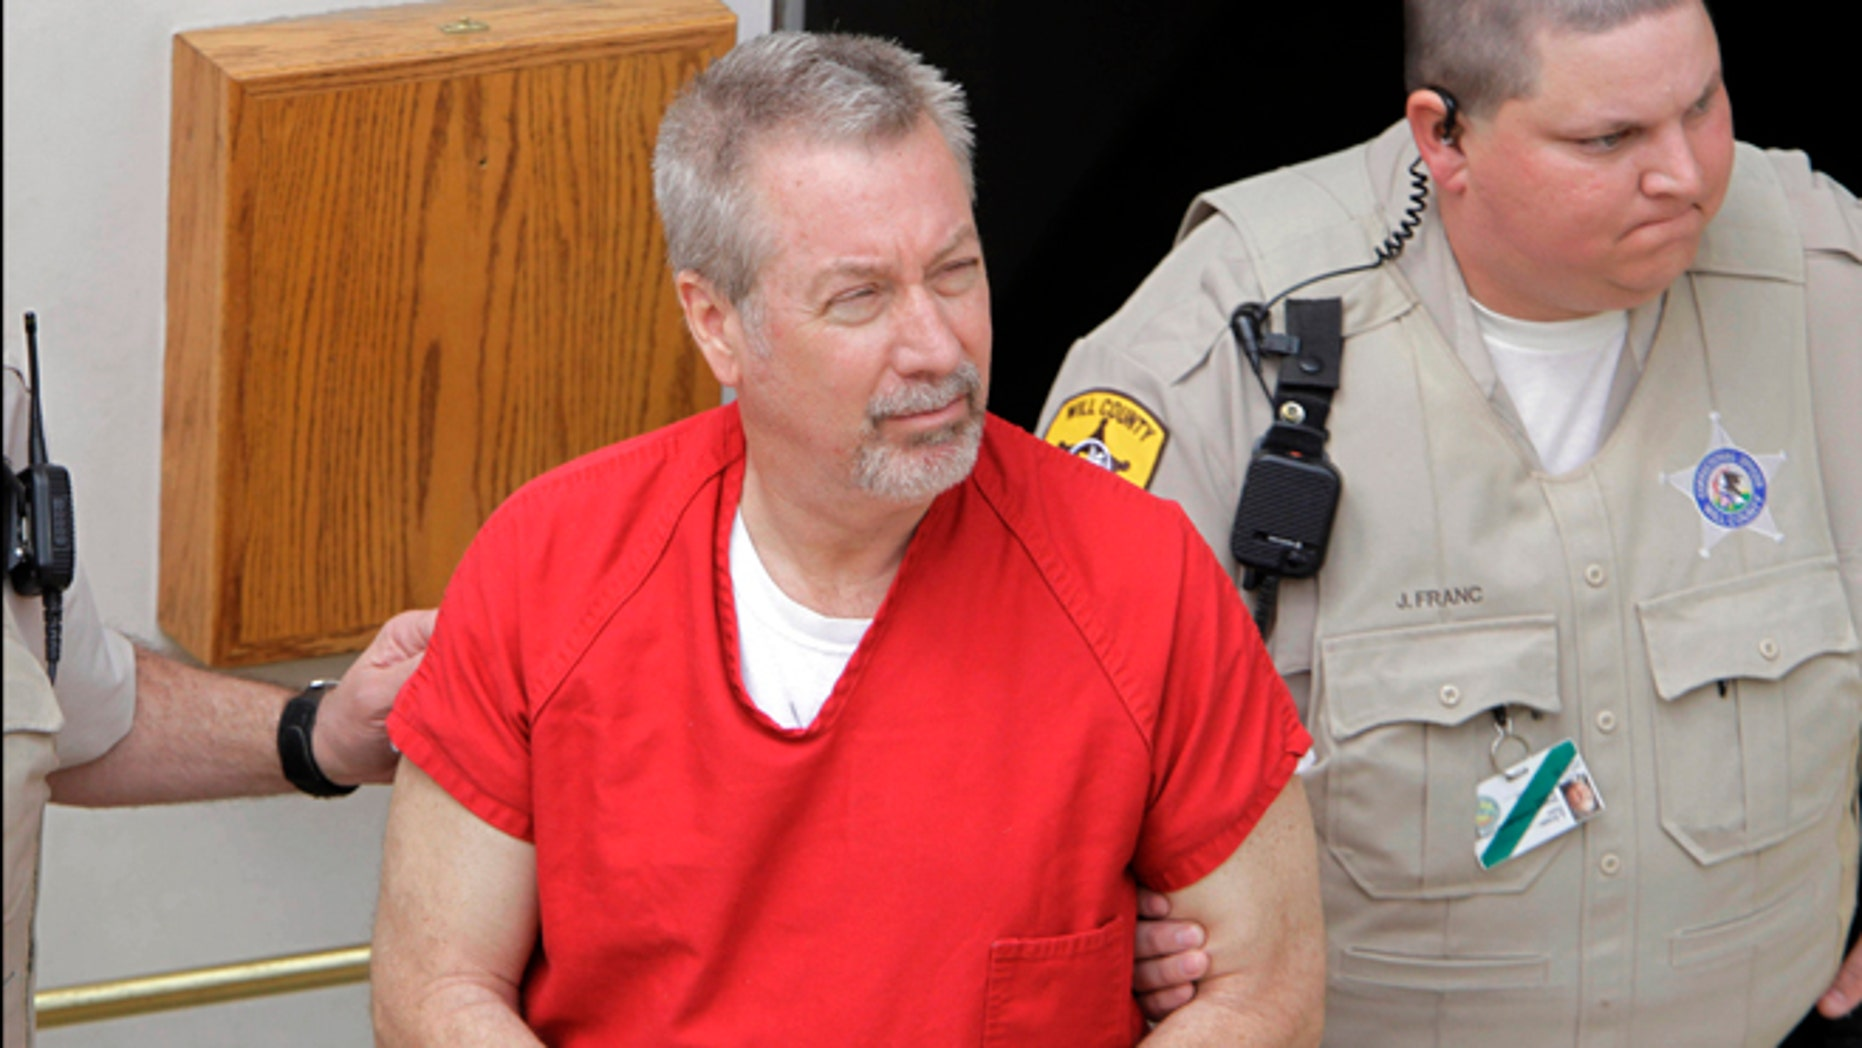 May 8, 2009: File photo, former Bolingbrook, Ill., police sergeant Drew Peterson leaves the Will County Courthouse in Joliet, Ill., after his arraignment on charges of first-degree murder in the 2004 death of his former wife Kathleen Savio.